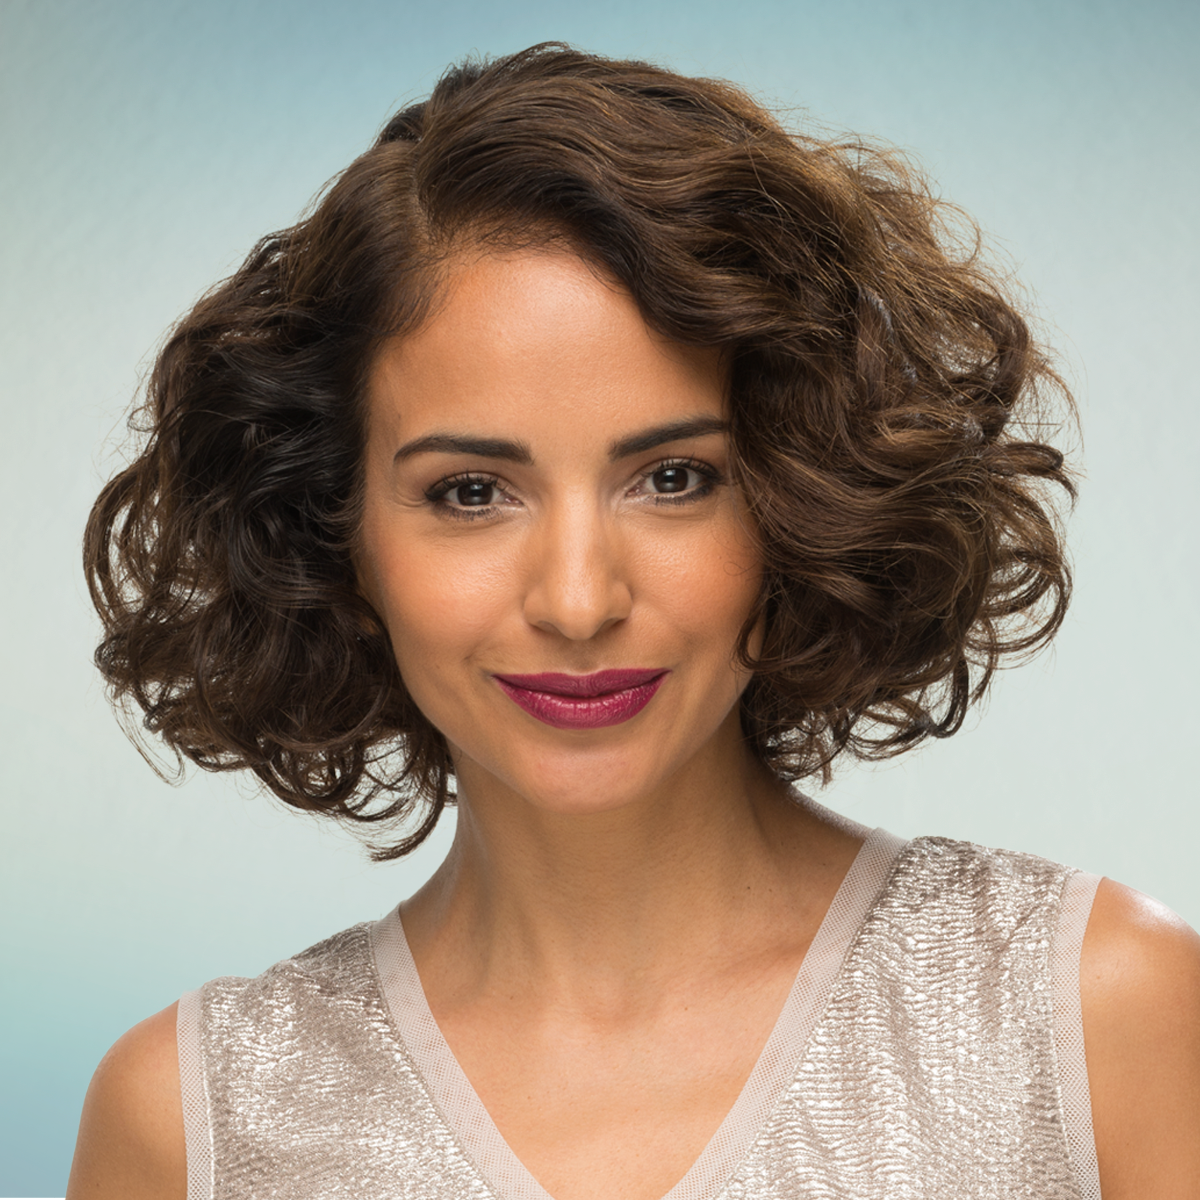 Curly Bob - Short Hairstyle for Women